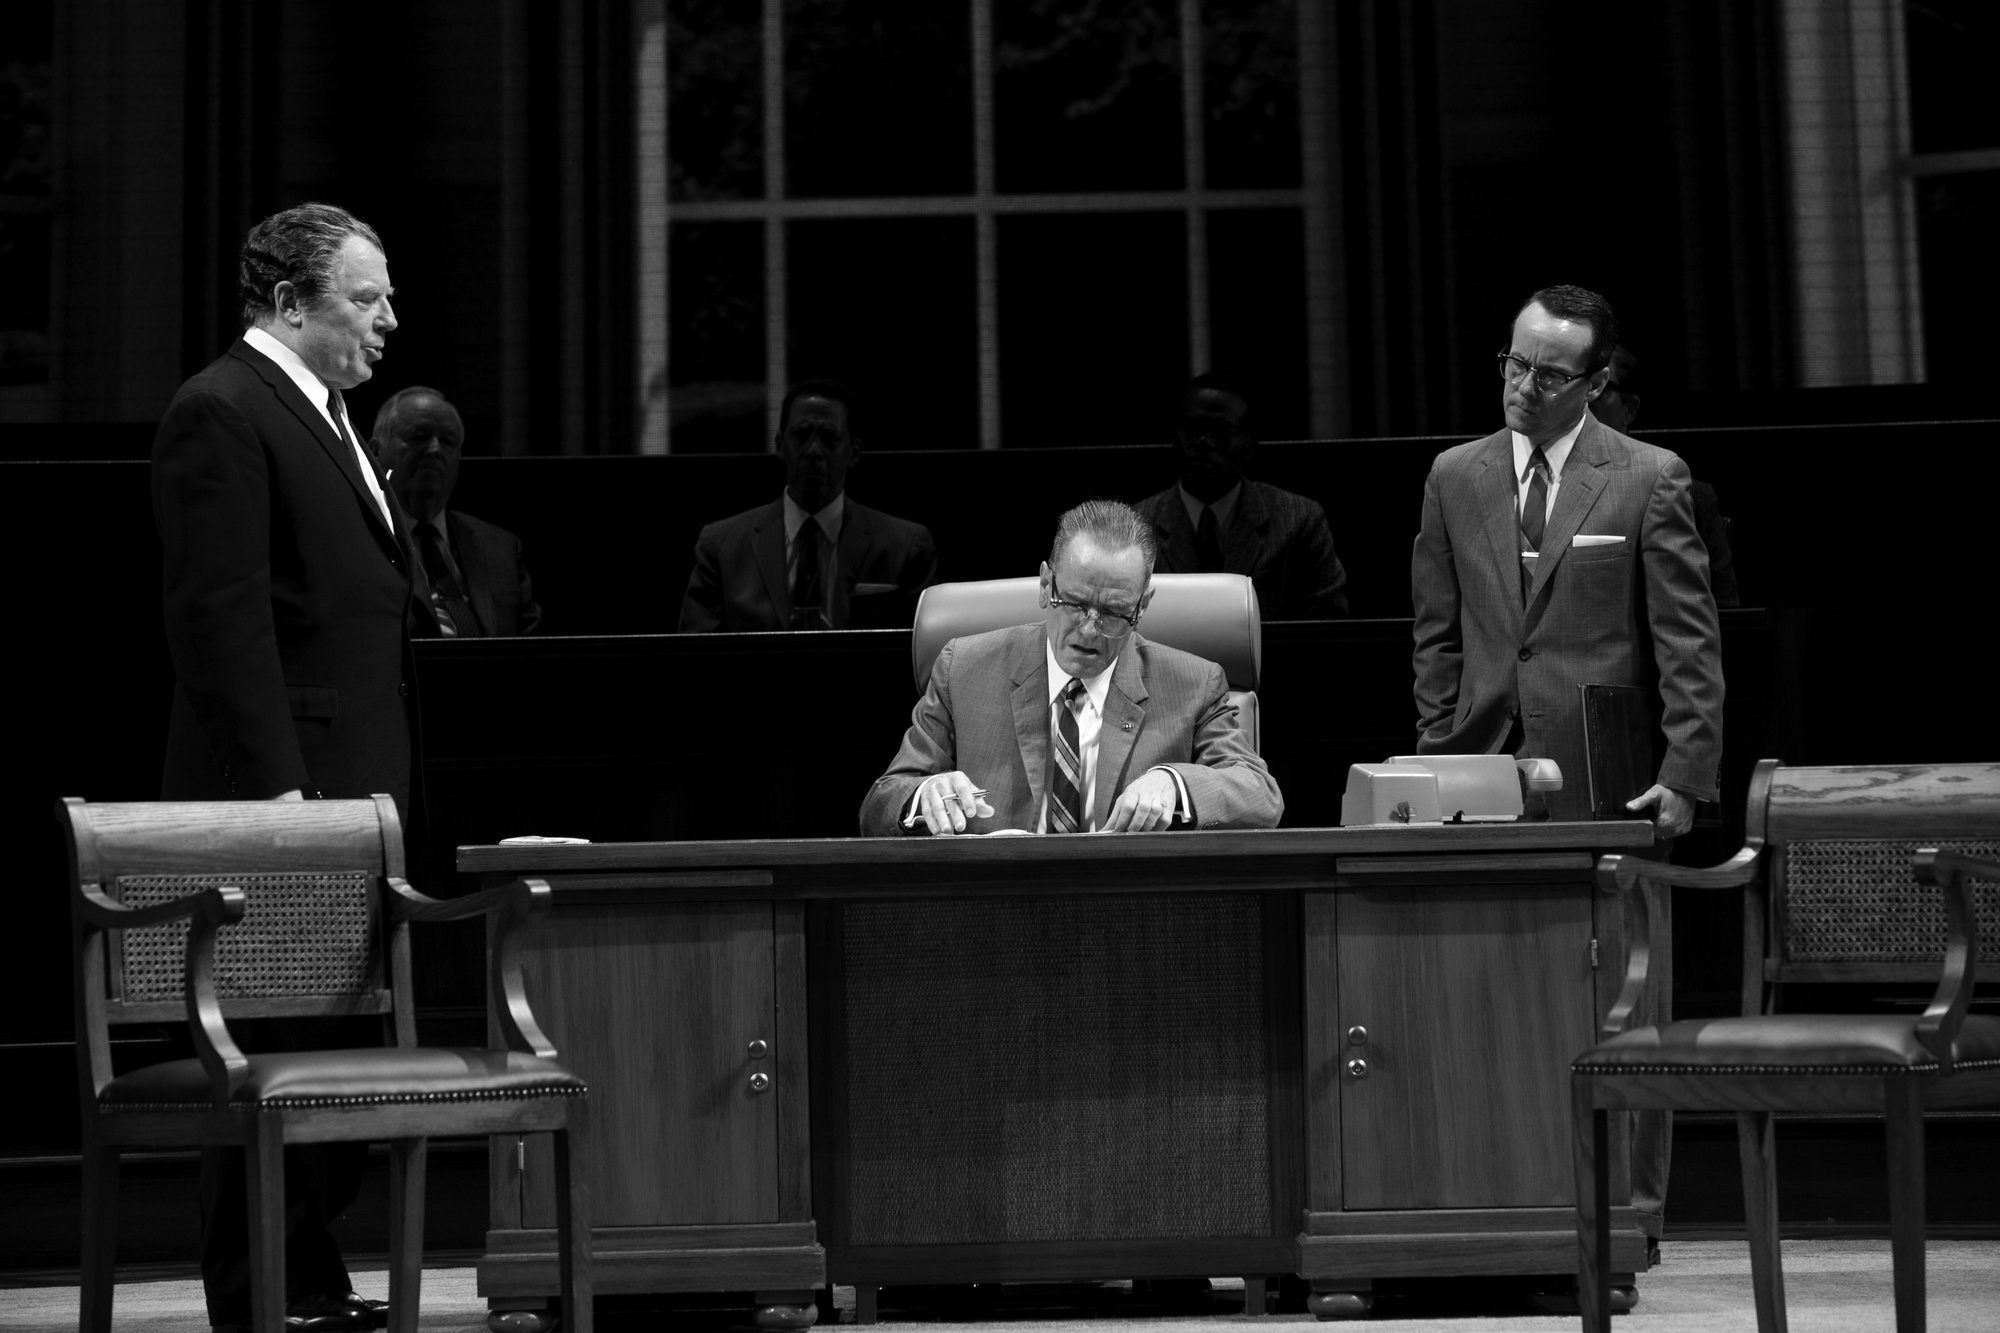 """Lyndon B. Johnson (Bryan Cranston) makes decisions from his iconic desk chair in the ART's production of """"All the Way."""""""